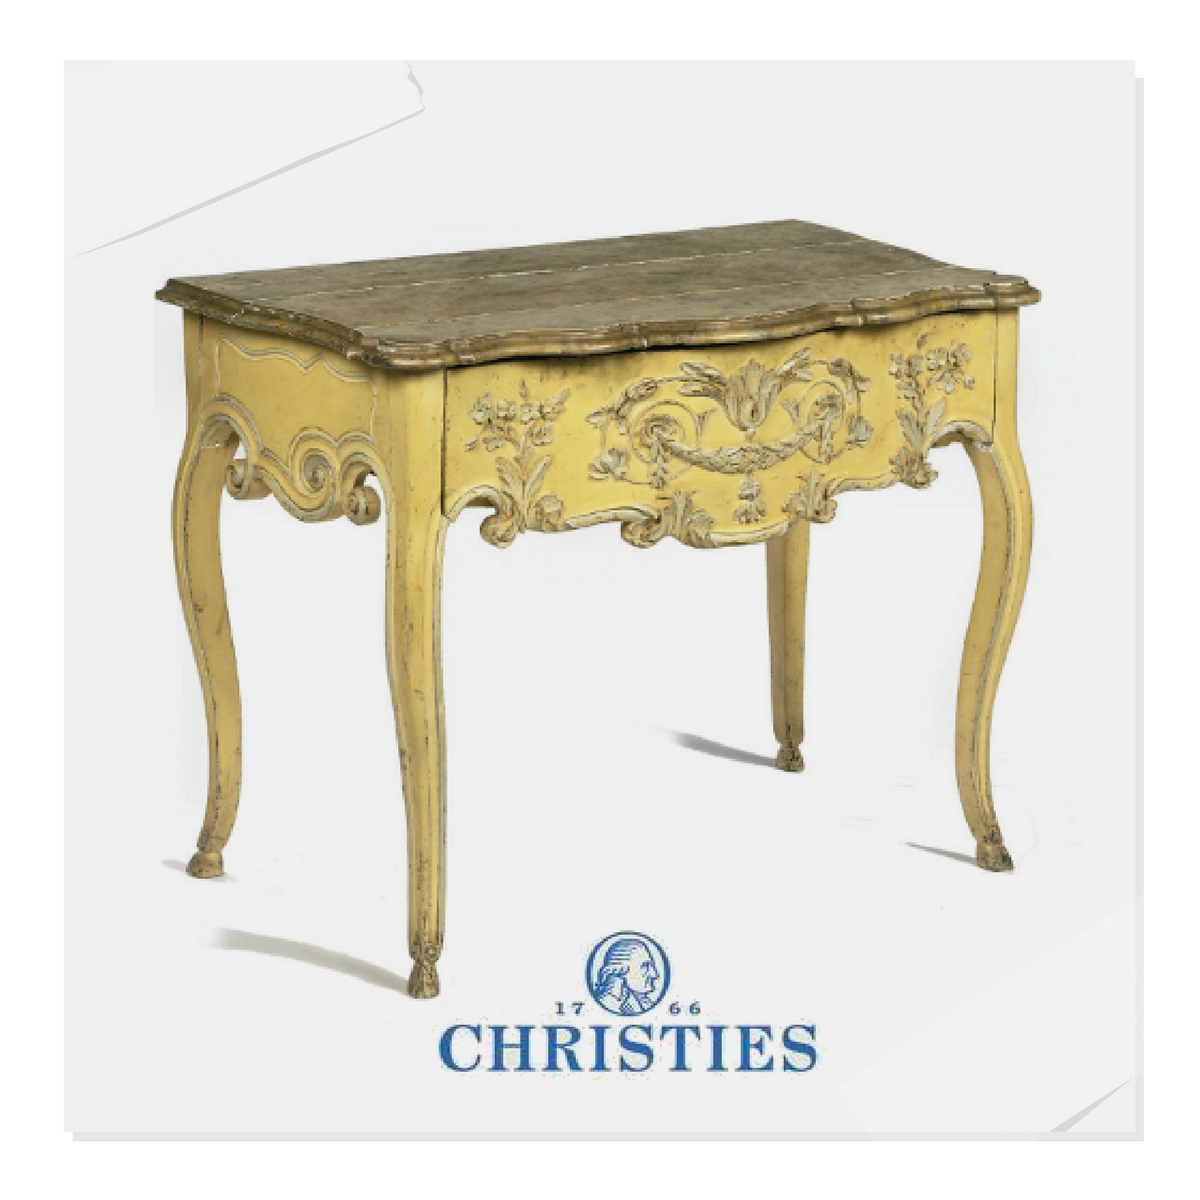 Looking For Ideas For Yellow Painted Furniture? -You Need To See This Piece!